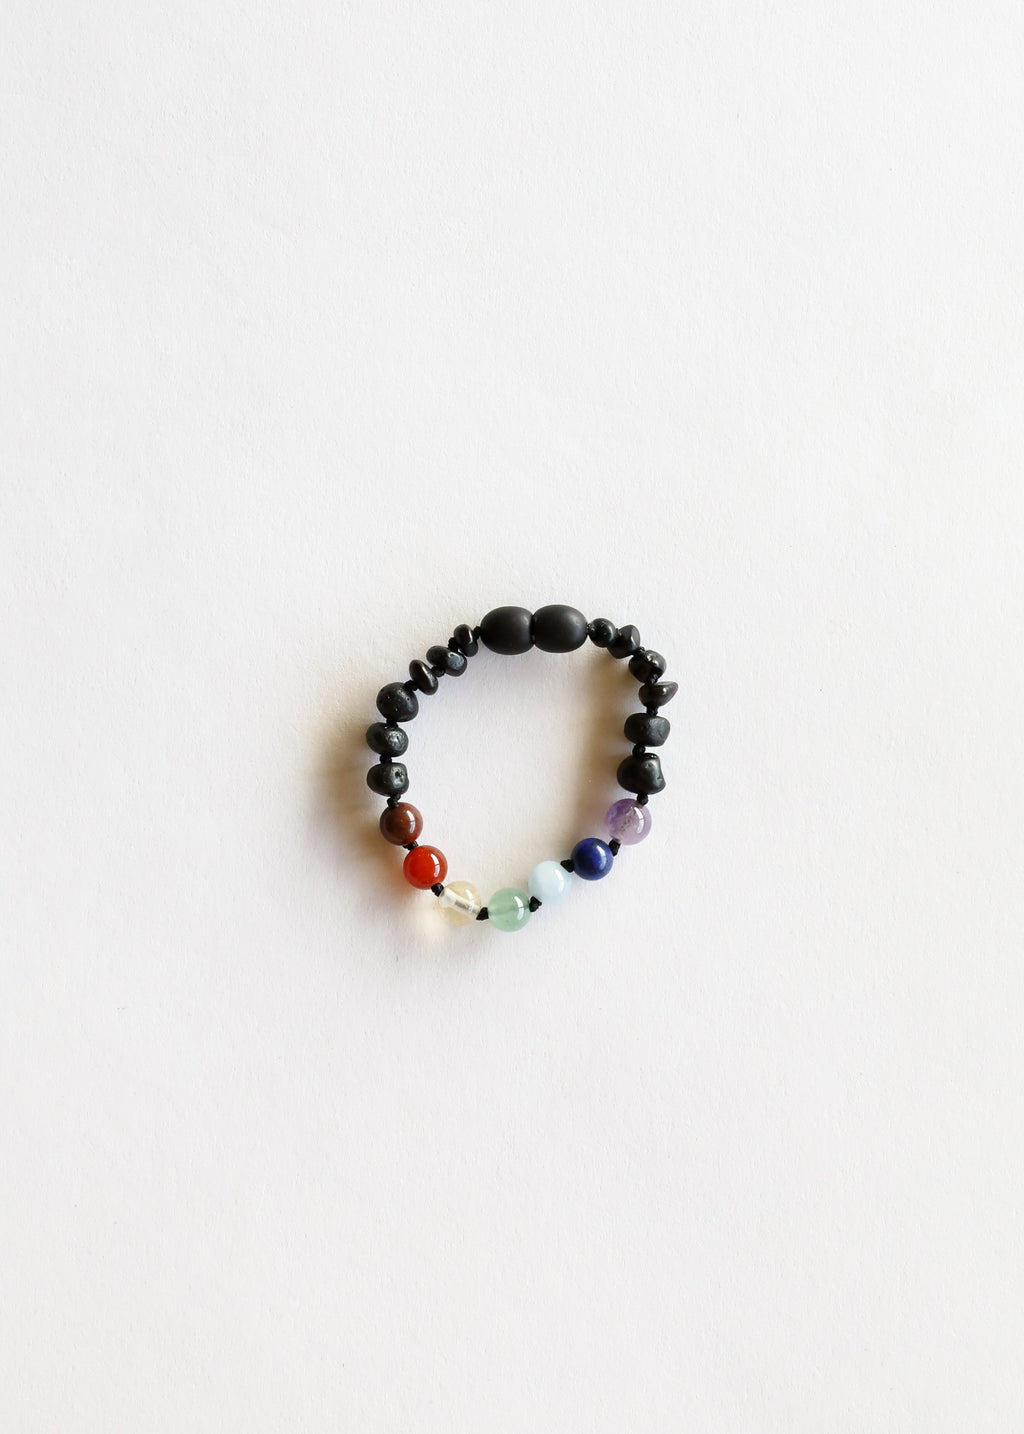 Raw Black Amber + CHAKRA Crystals || Bracelet or Anklet